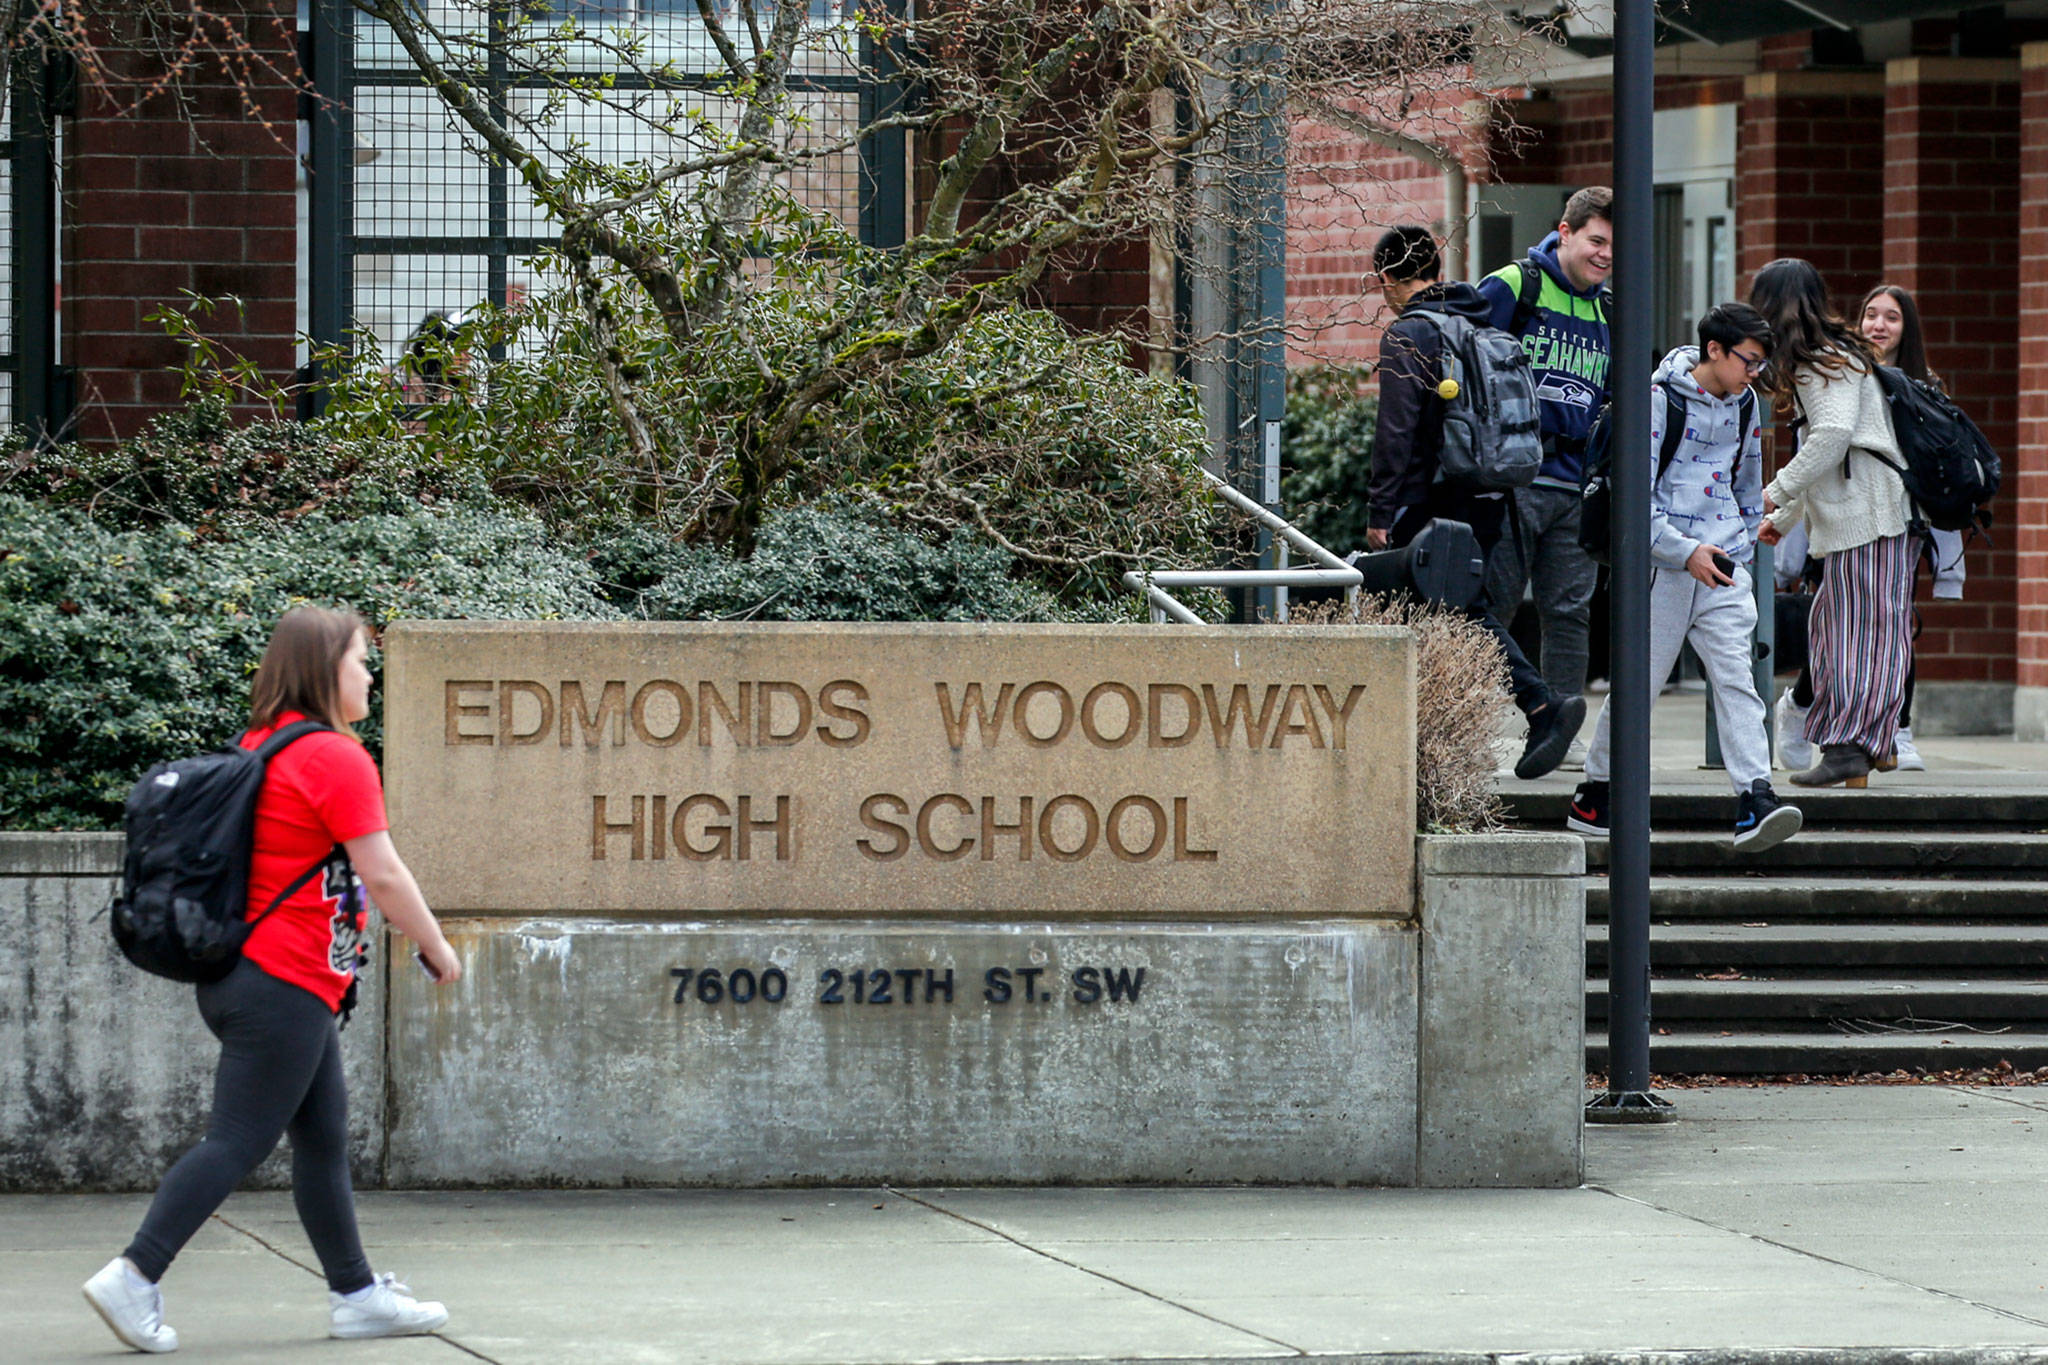 Students make their way after school at Edmonds-Woodway High School on Thursday. All public and private schools in Snohomish, King and Pierce counties must close for six weeks. (Kevin Clark / The Herald)